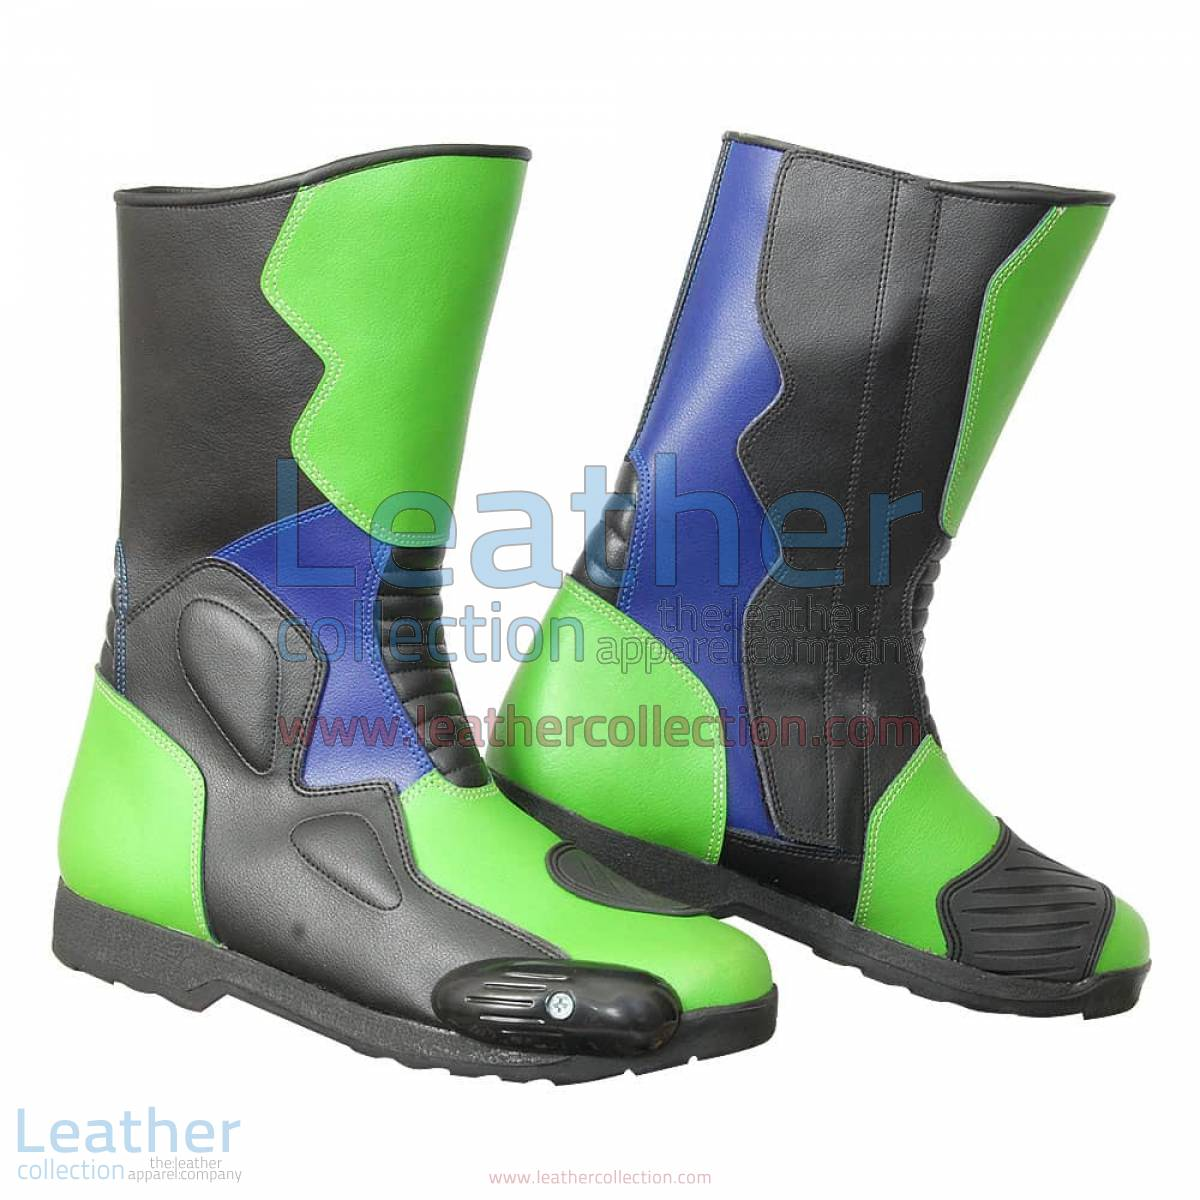 Speed Riding Boots | speed riding boots